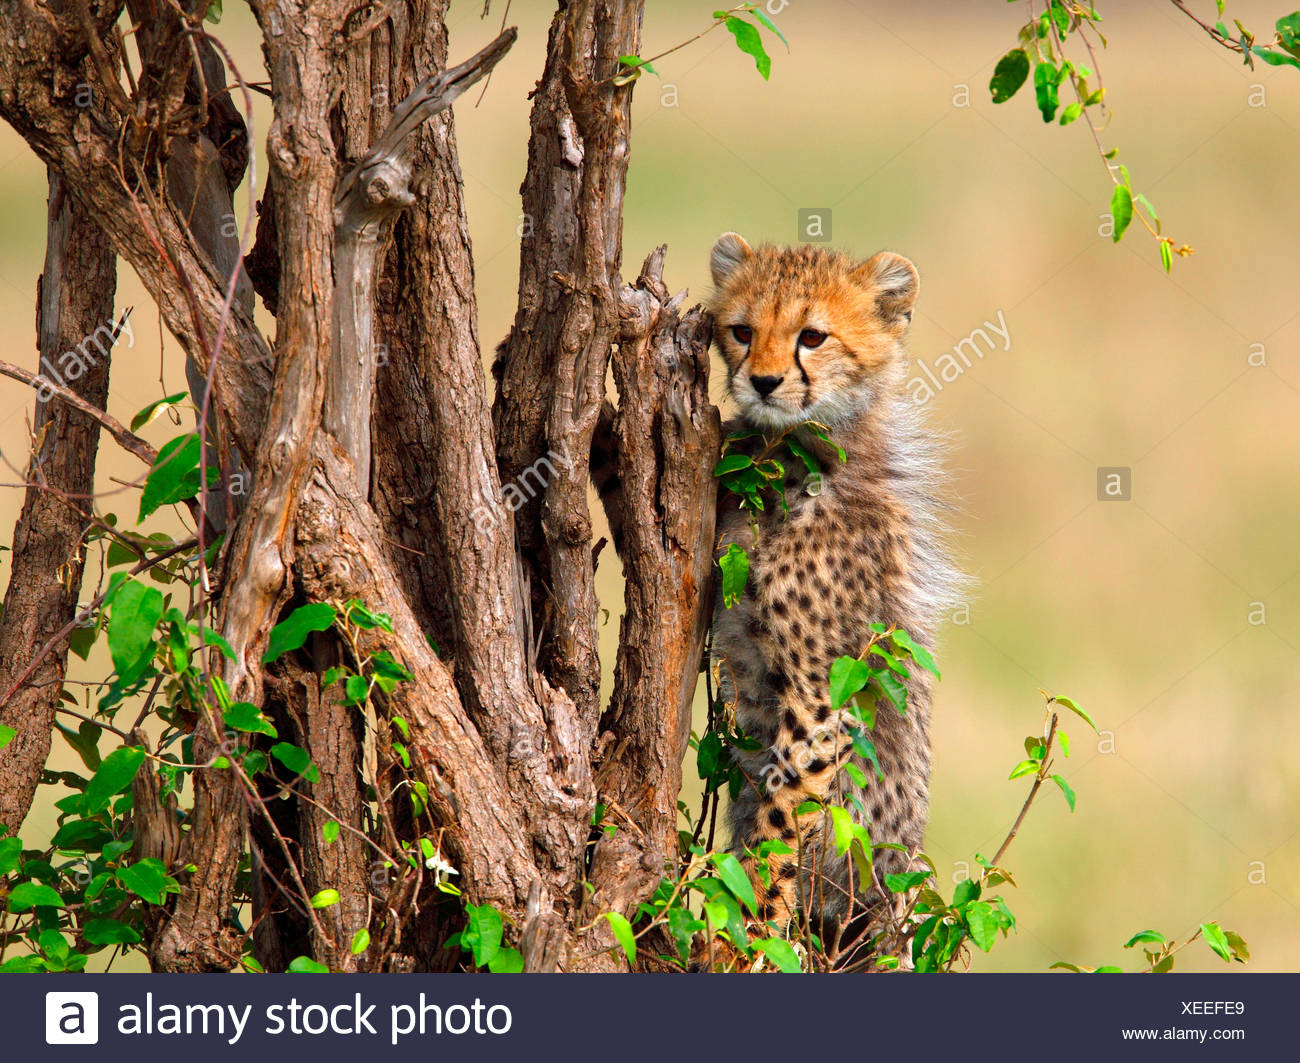 cheetah (Acinonyx jubatus), behind a tree, Kenya, Masai Mara National Park - Stock Image